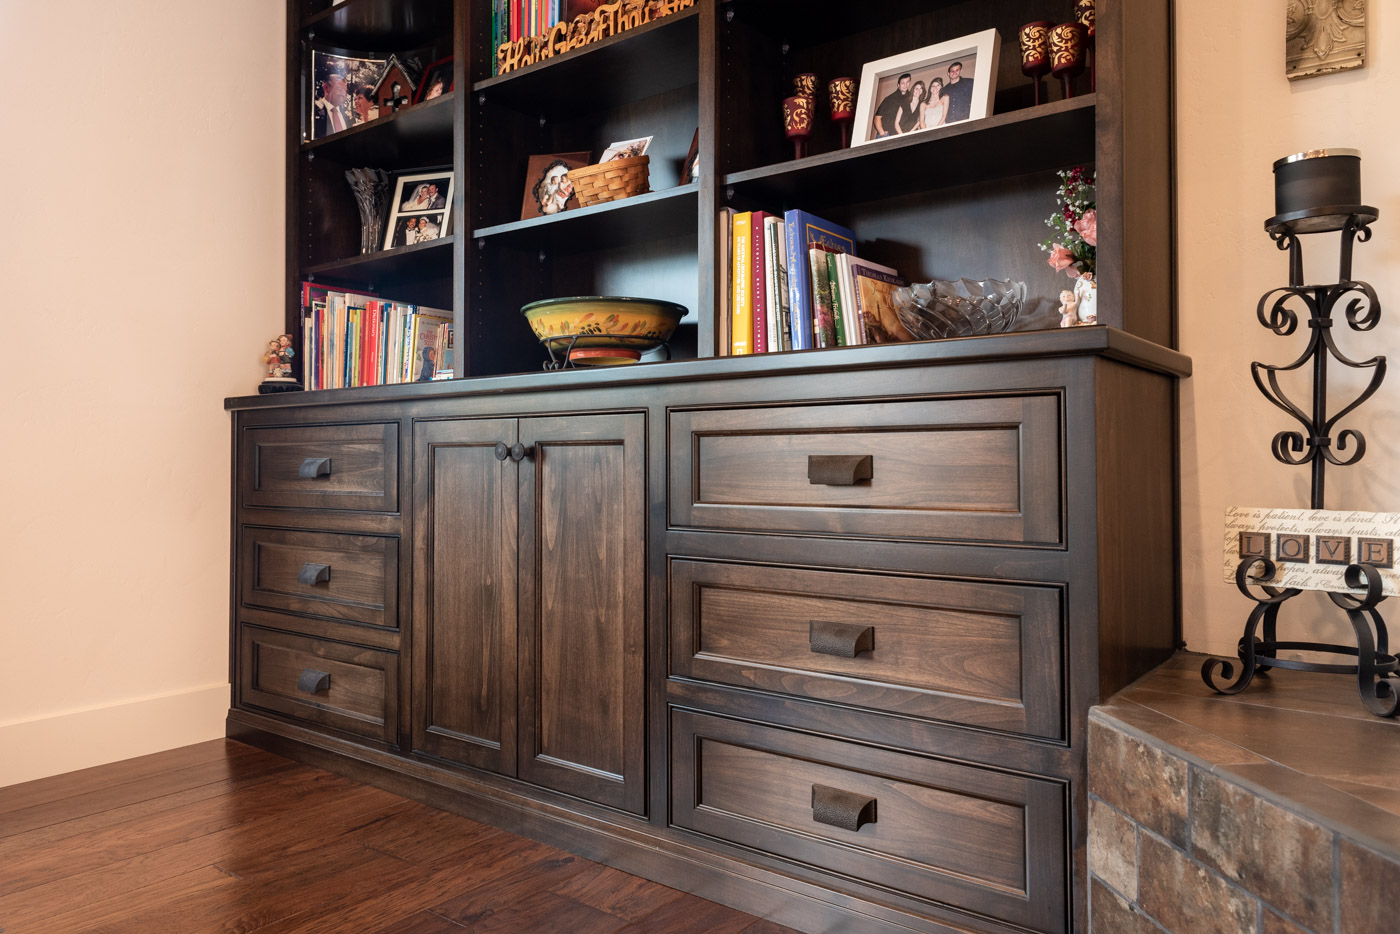 Tuscan Artisan custom stained Alder wood living room built-in bookcase cabinet